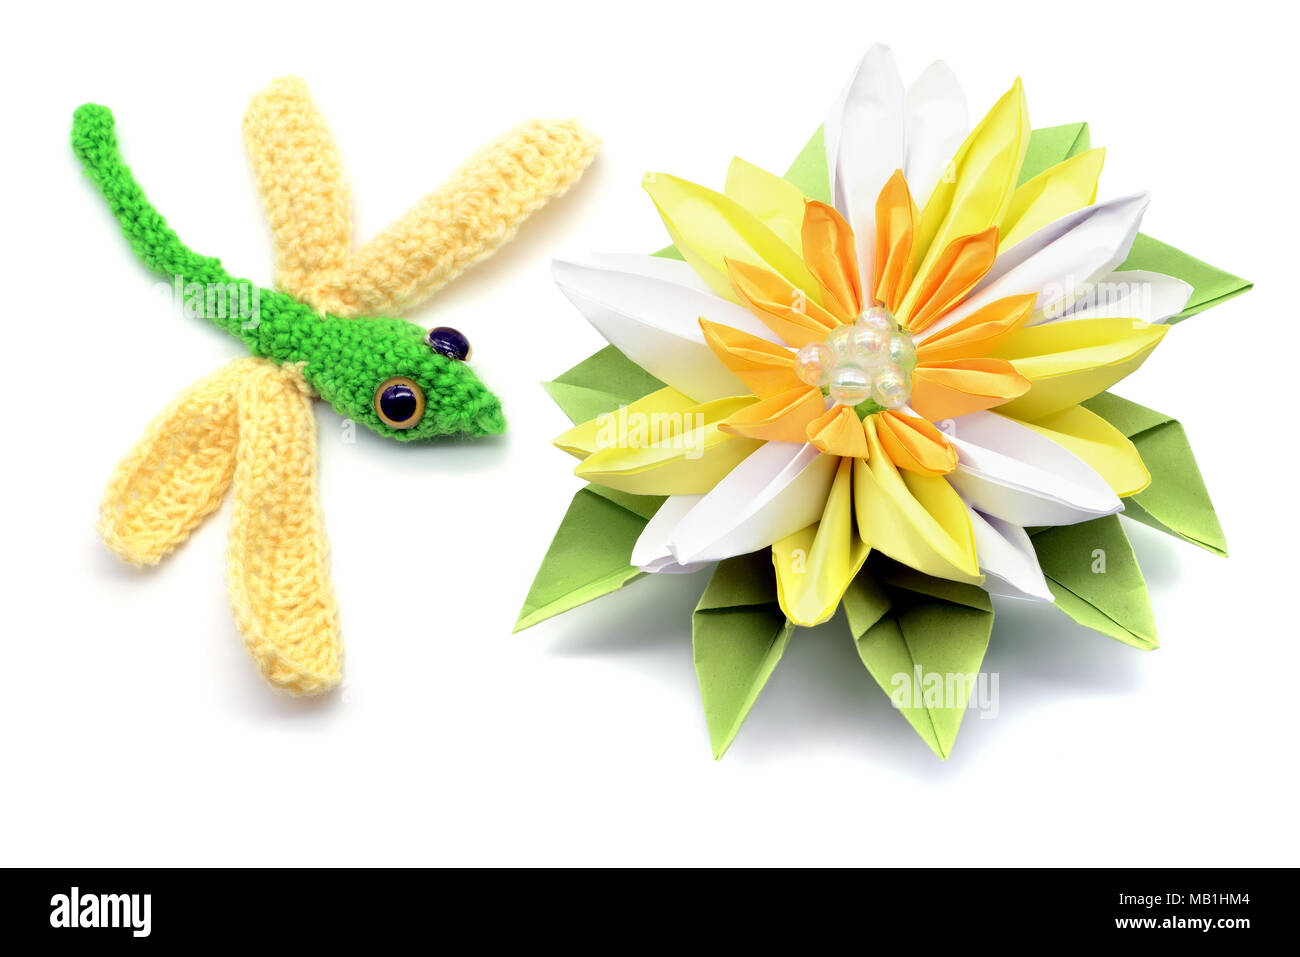 Crochet Dragonfly And Water Lily Made Of Paper Origami On White